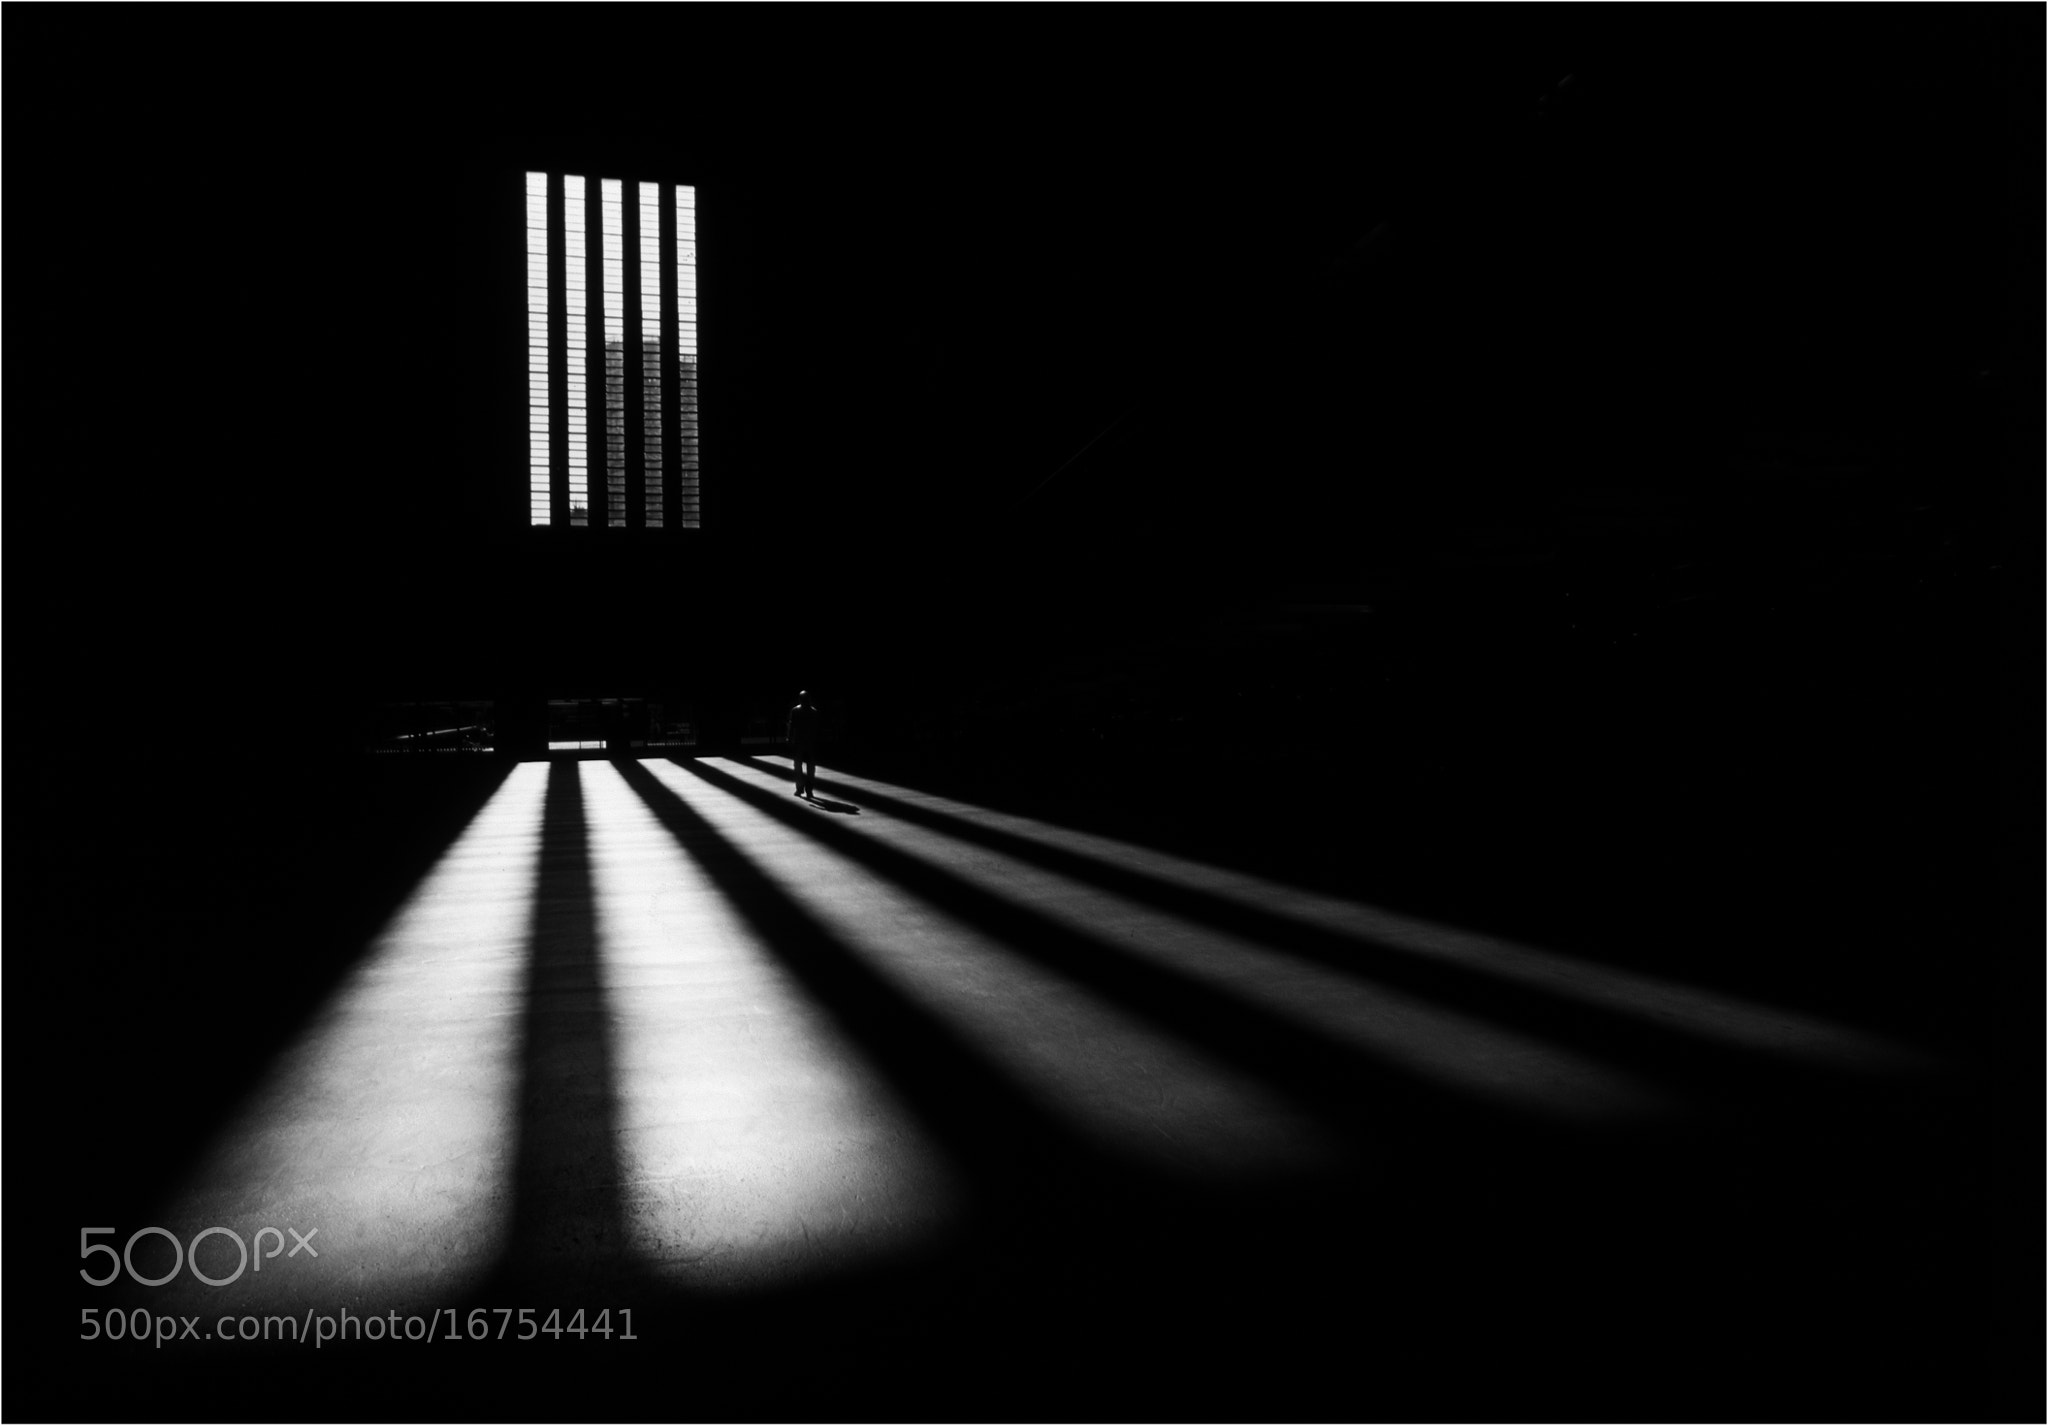 Photograph The Tate Modern by David Southern on 500px